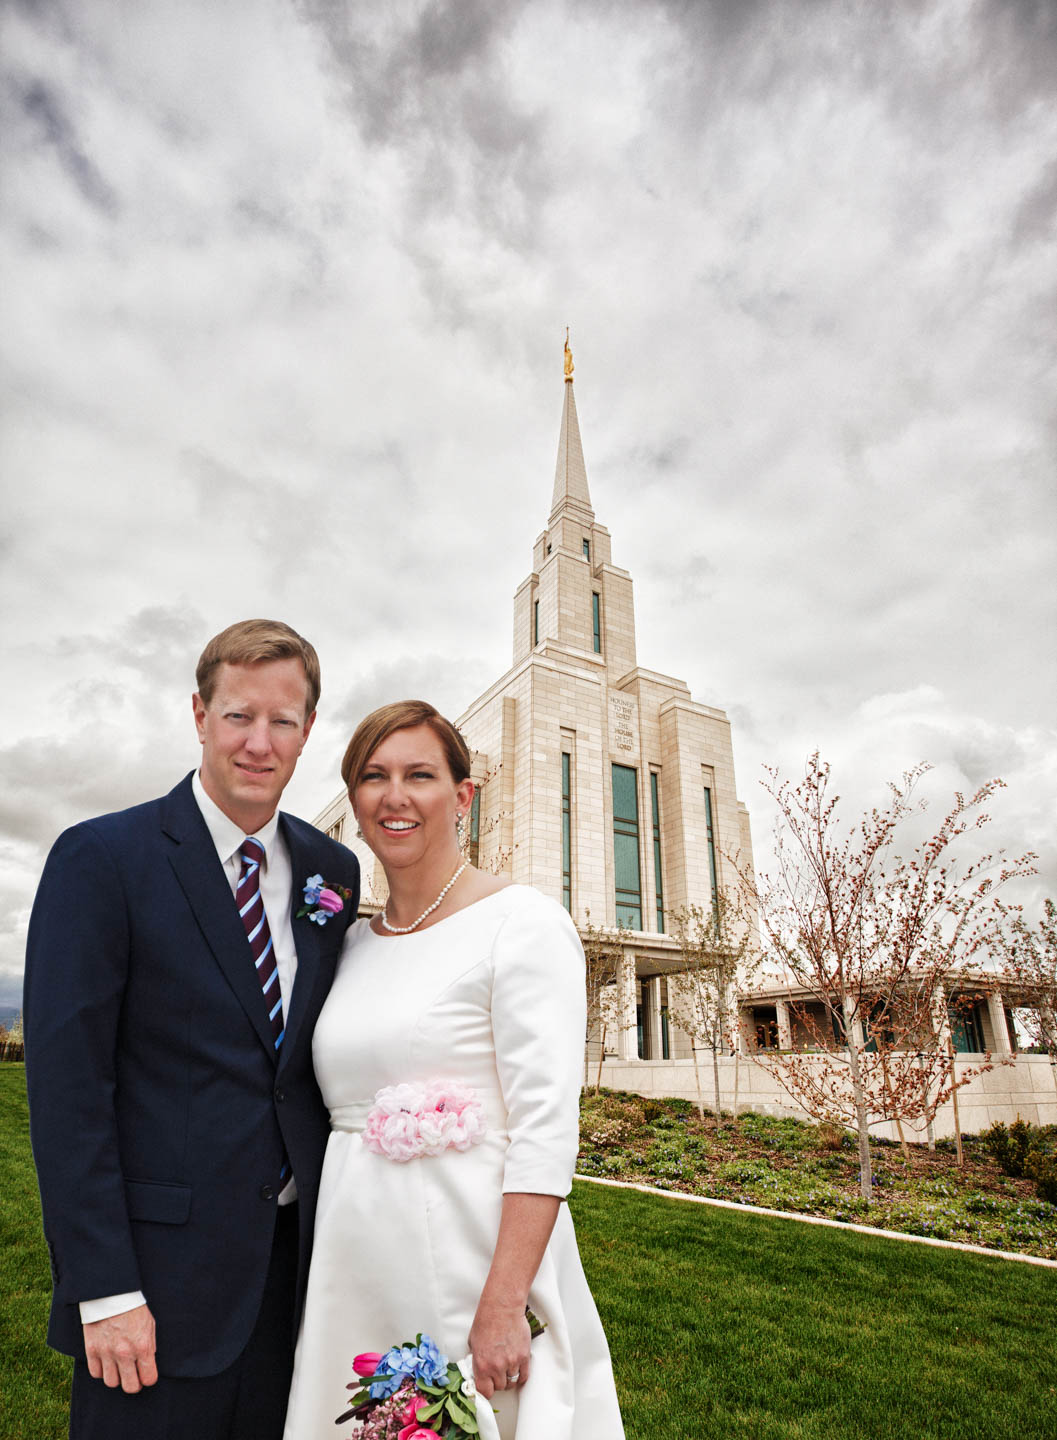 I created a Photoshop composite of the bride and groom with the temple in the background